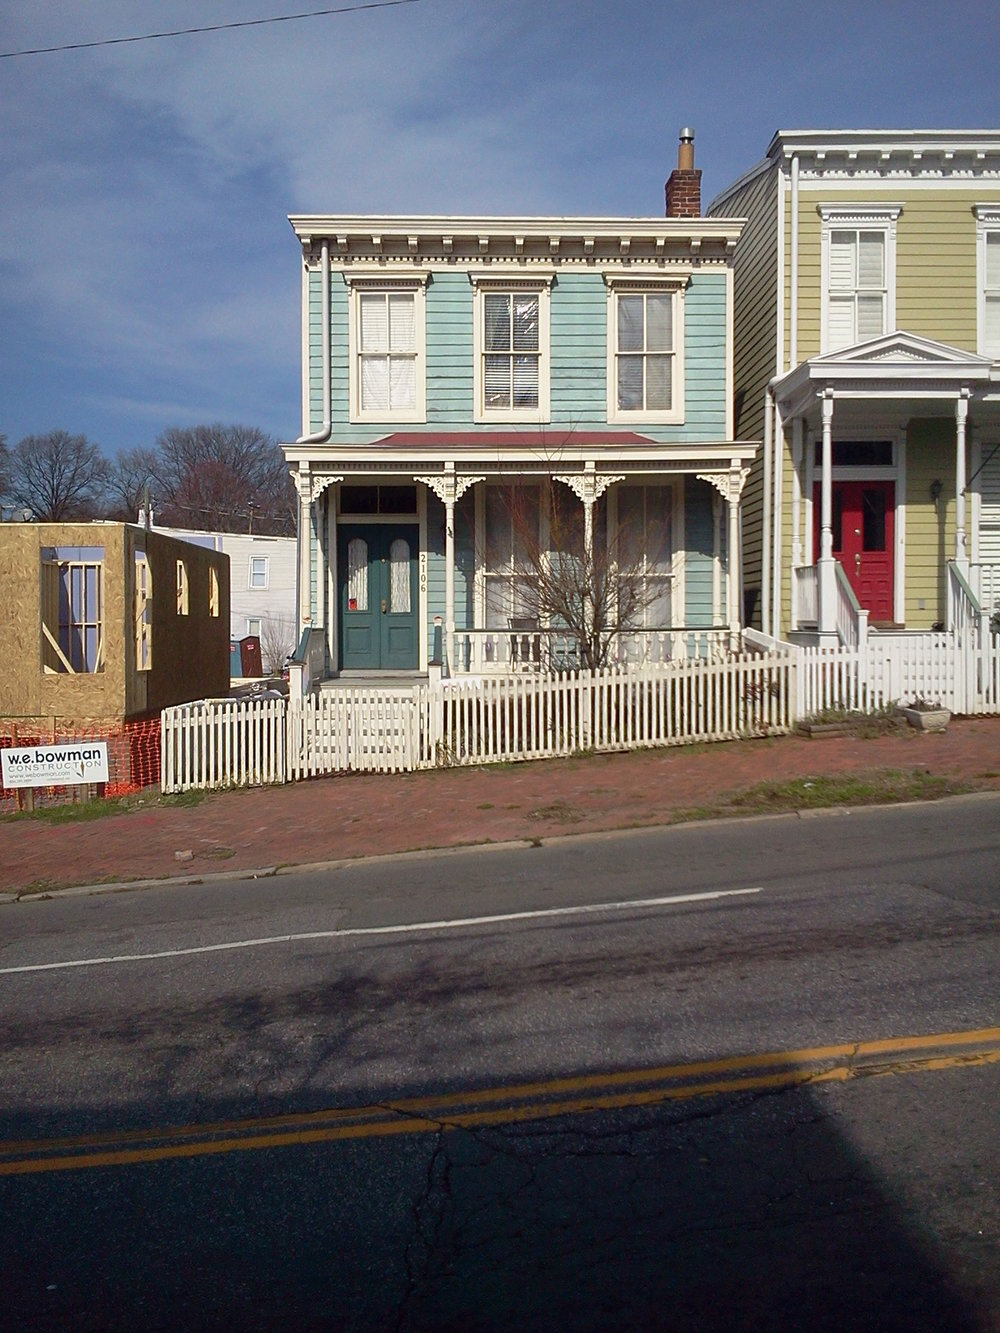 2012-03-09 2106ebroad.frontfacade.wholehouserestoration.jpg